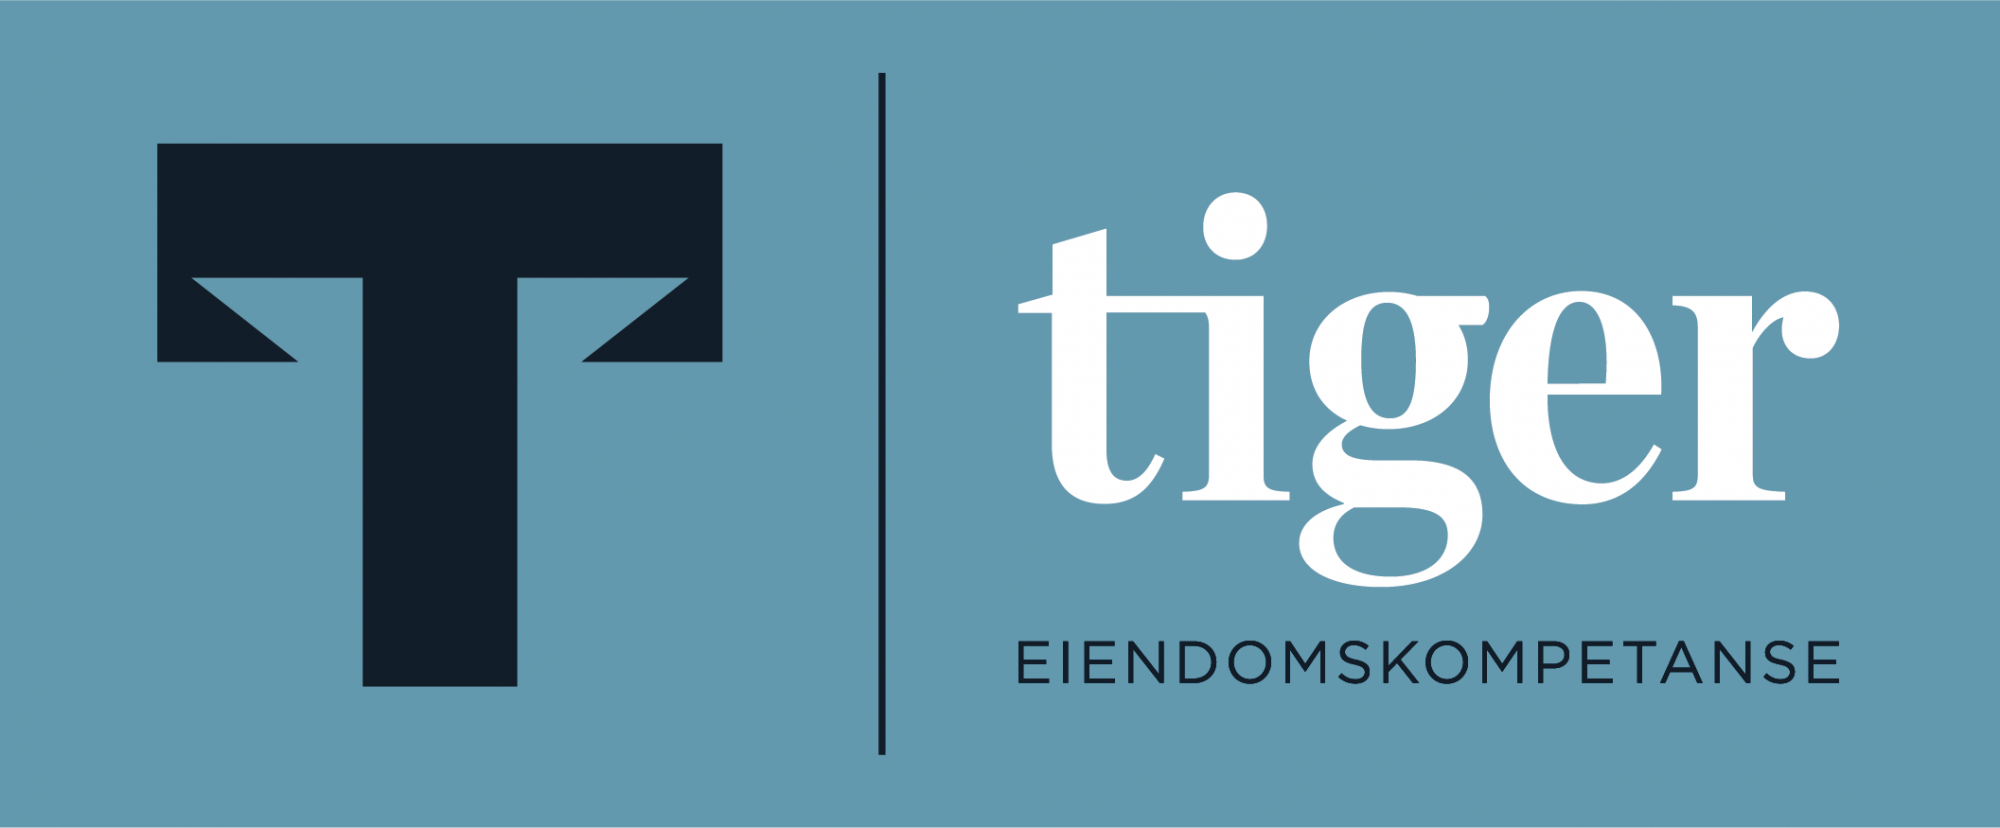 TIGER_HORISONTAL_LOGO_LARGE